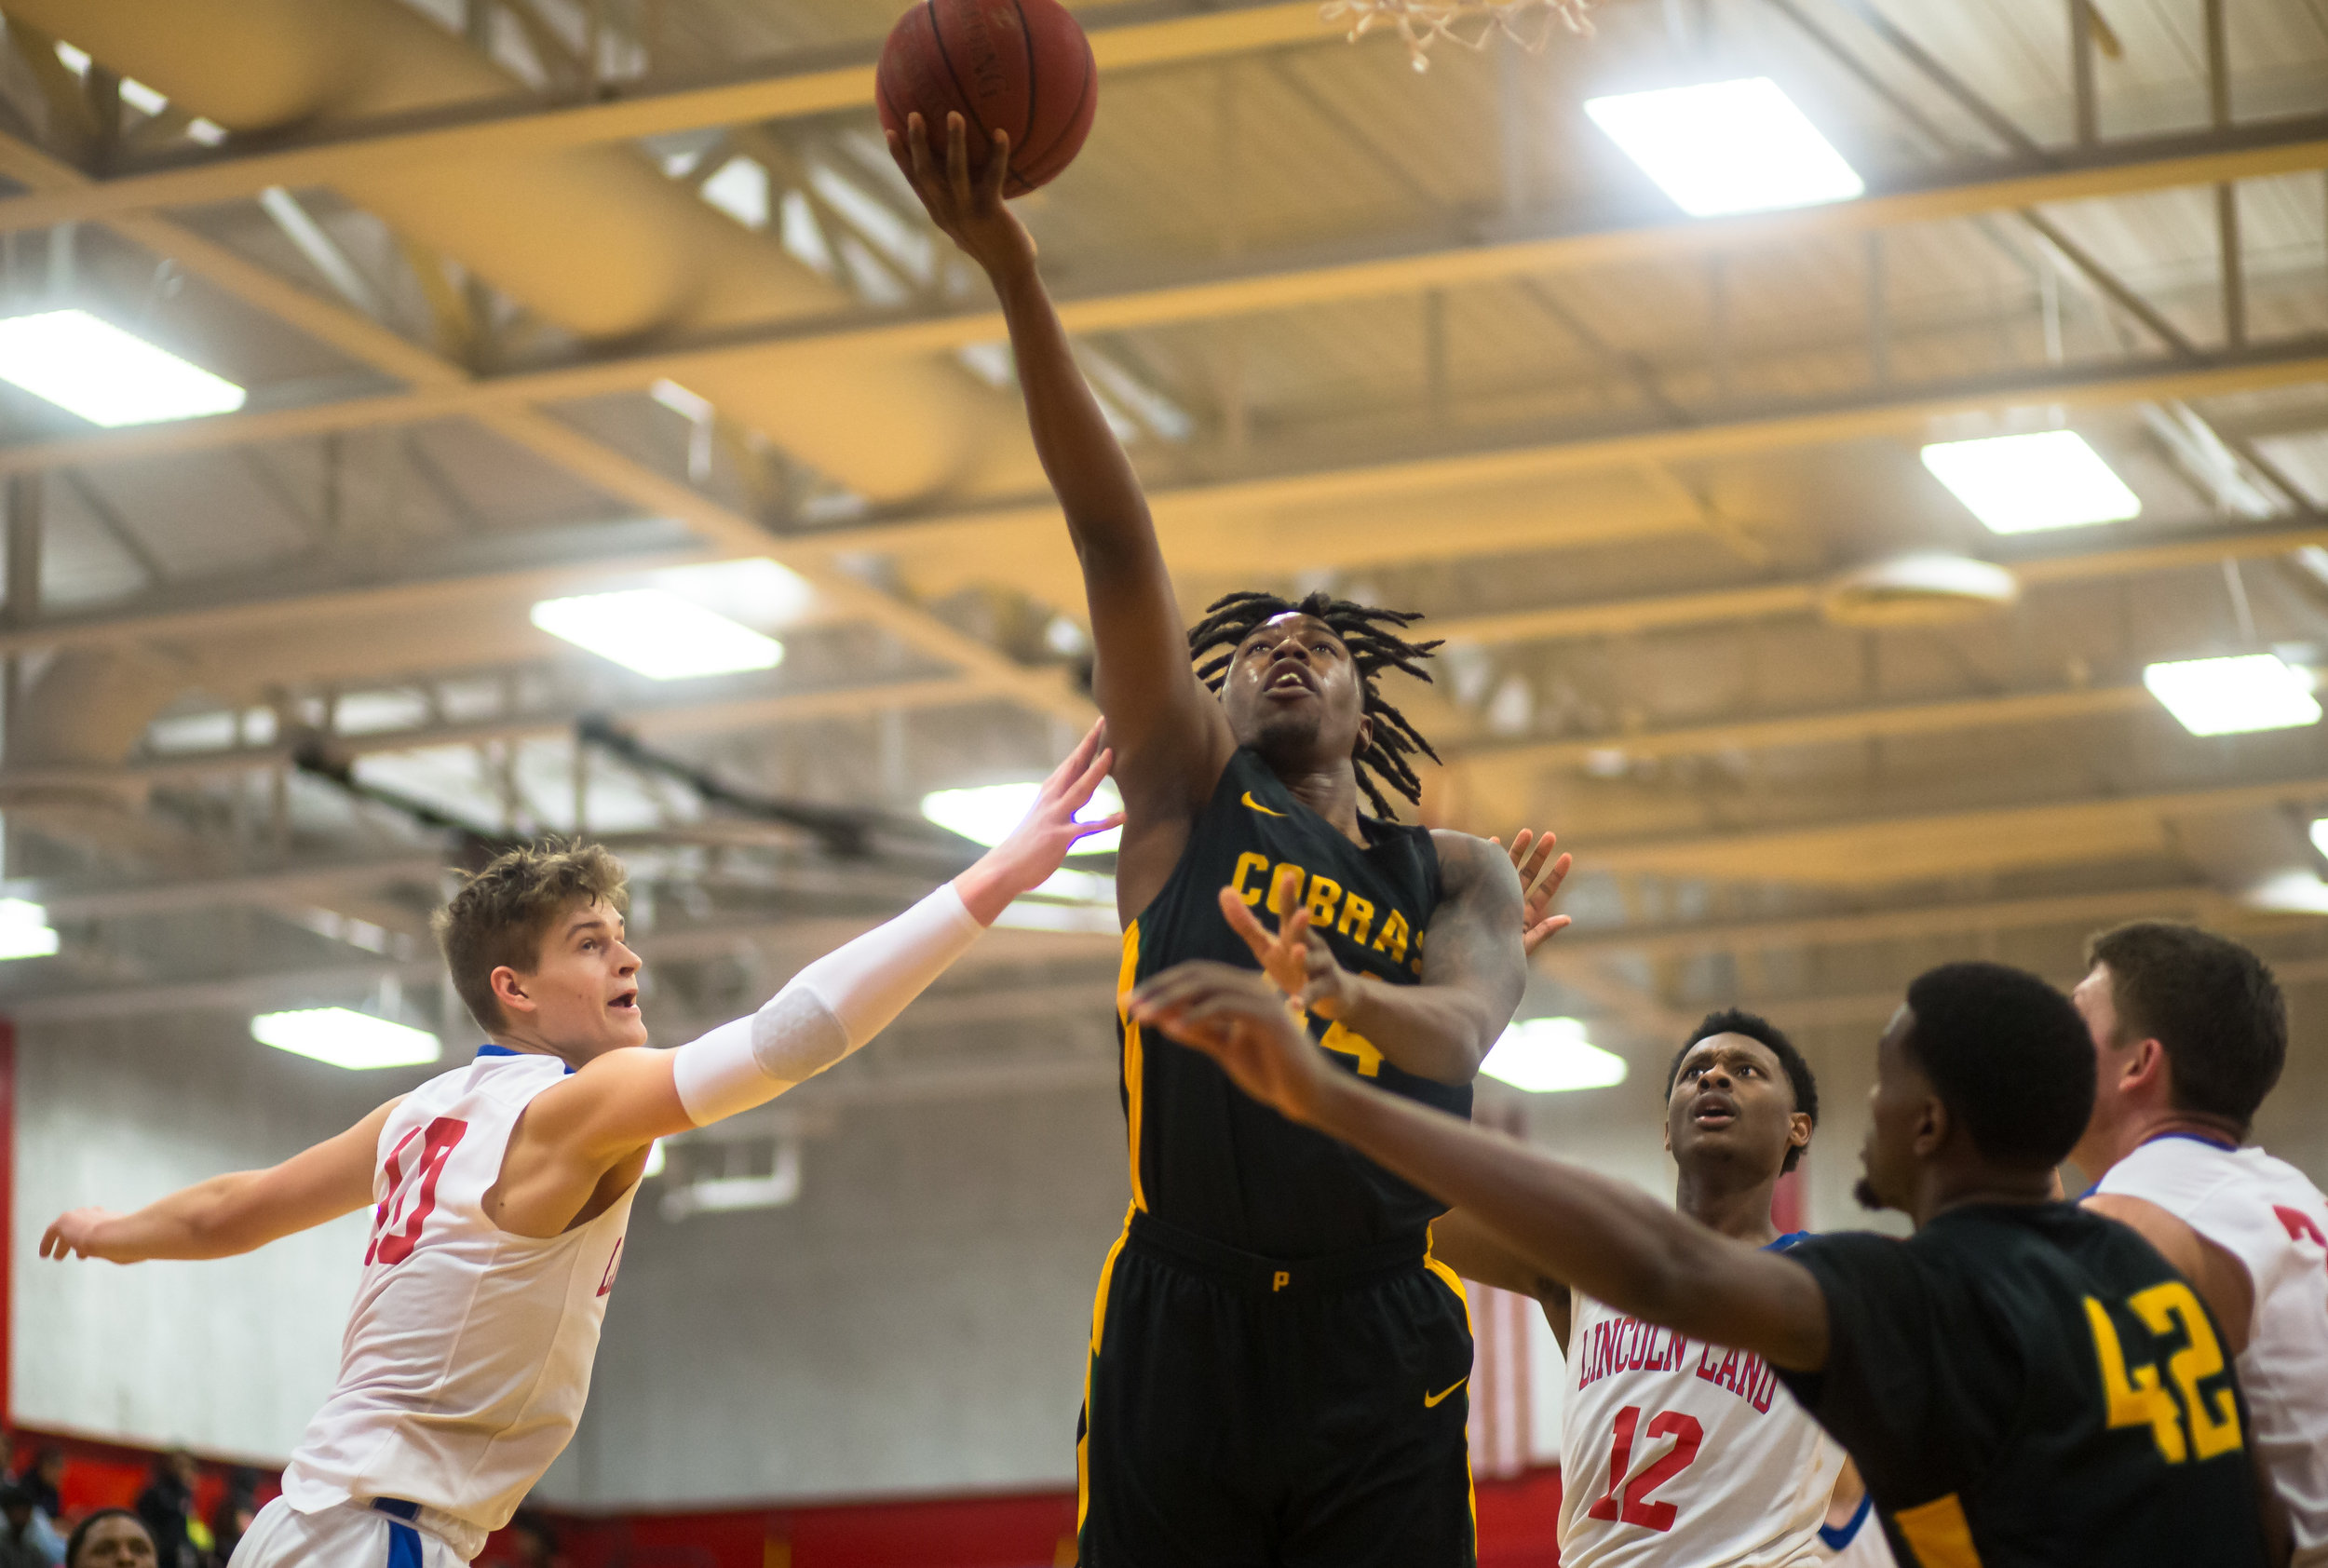 Parkland College's Bruno Williams Jr. (44) goes up for a basket against Lincoln Land Community College's Benji Eaker (10) in the second half at Lincoln Land Community College's Cass Gymnasium, Wednesday, Feb. 20, 2019, in Springfield, Ill. [Justin L. Fowler/The State Journal-Register]